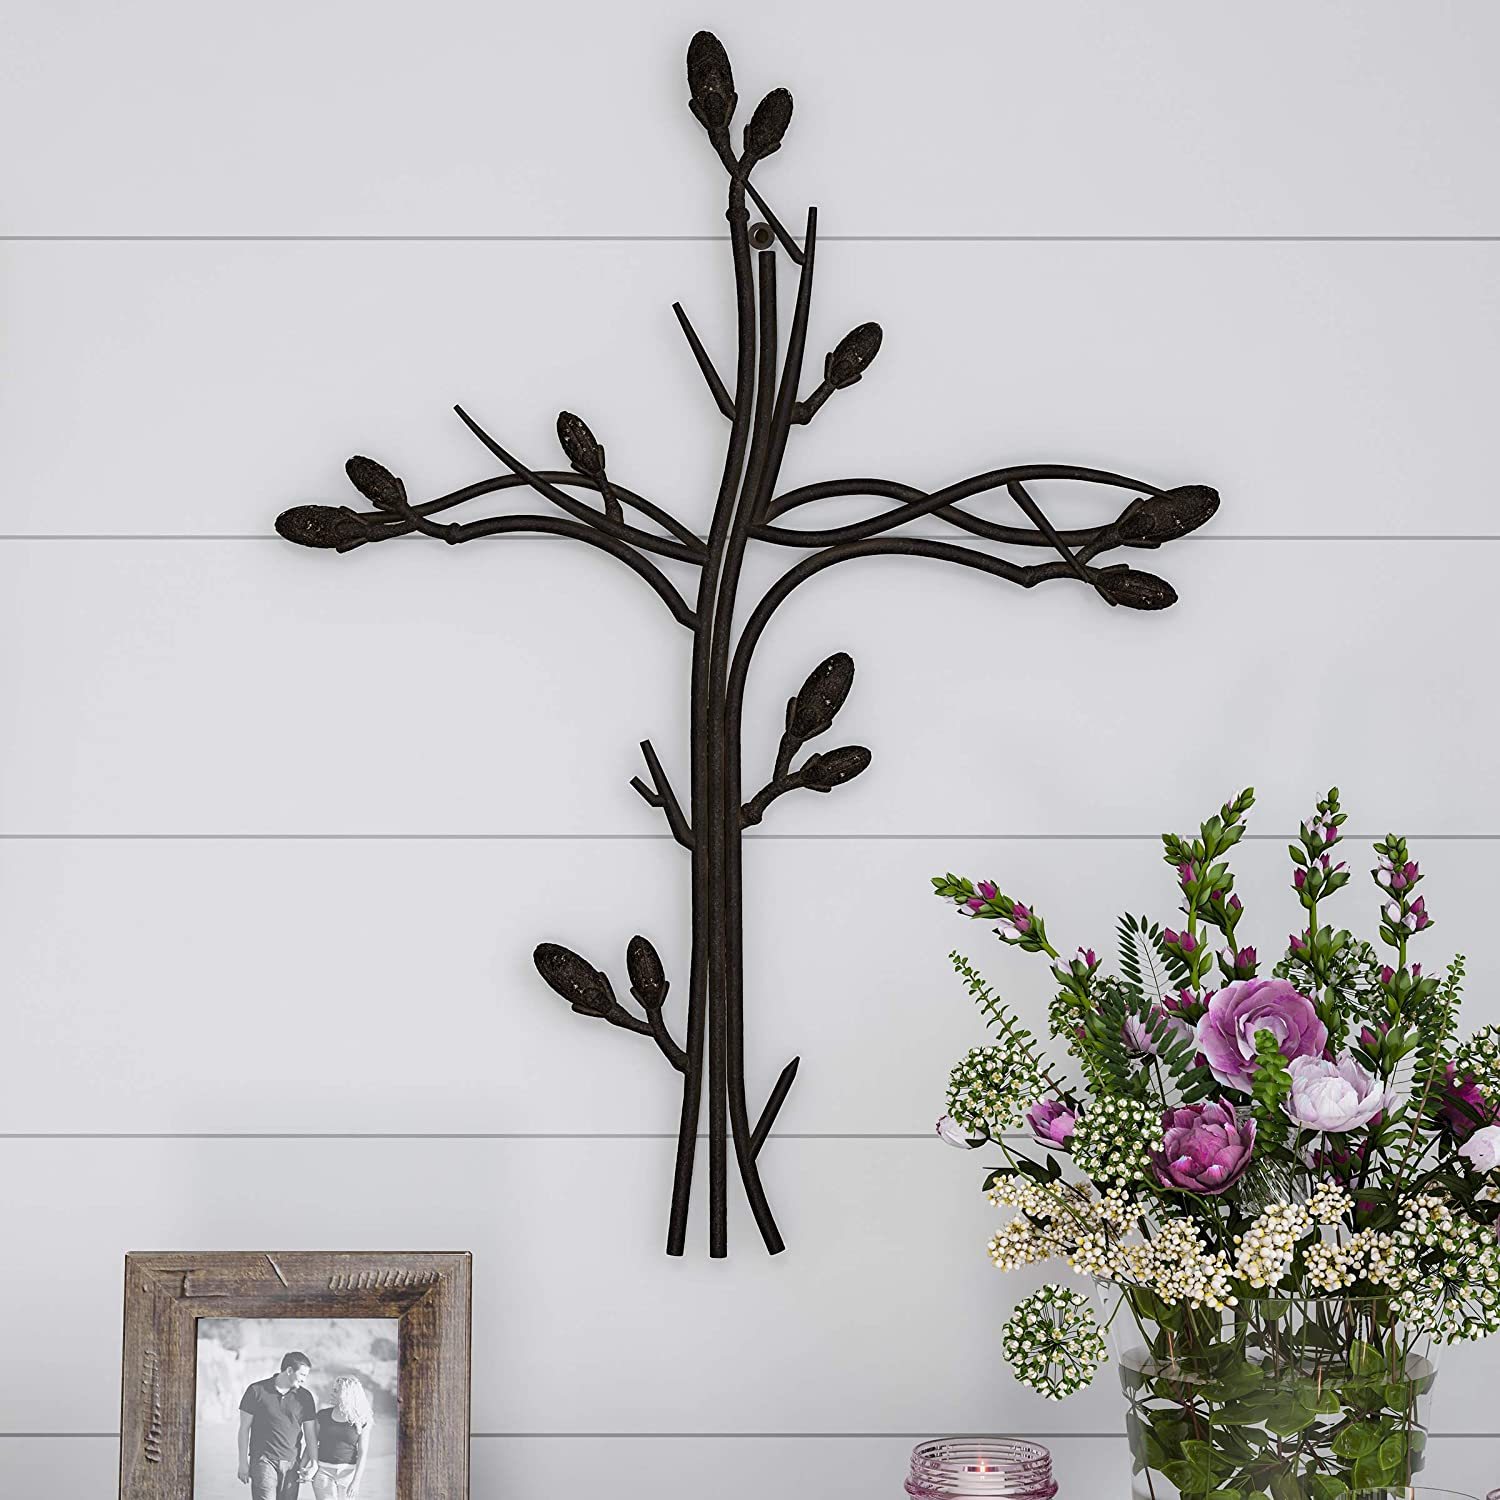 Lavish Home Handmade Short Flat White Mango Wood Vase Metal Wall Cross Intertwined Vine Design-Rustic Handcrafted Religious Art for Decor in Living Room, Bedroom